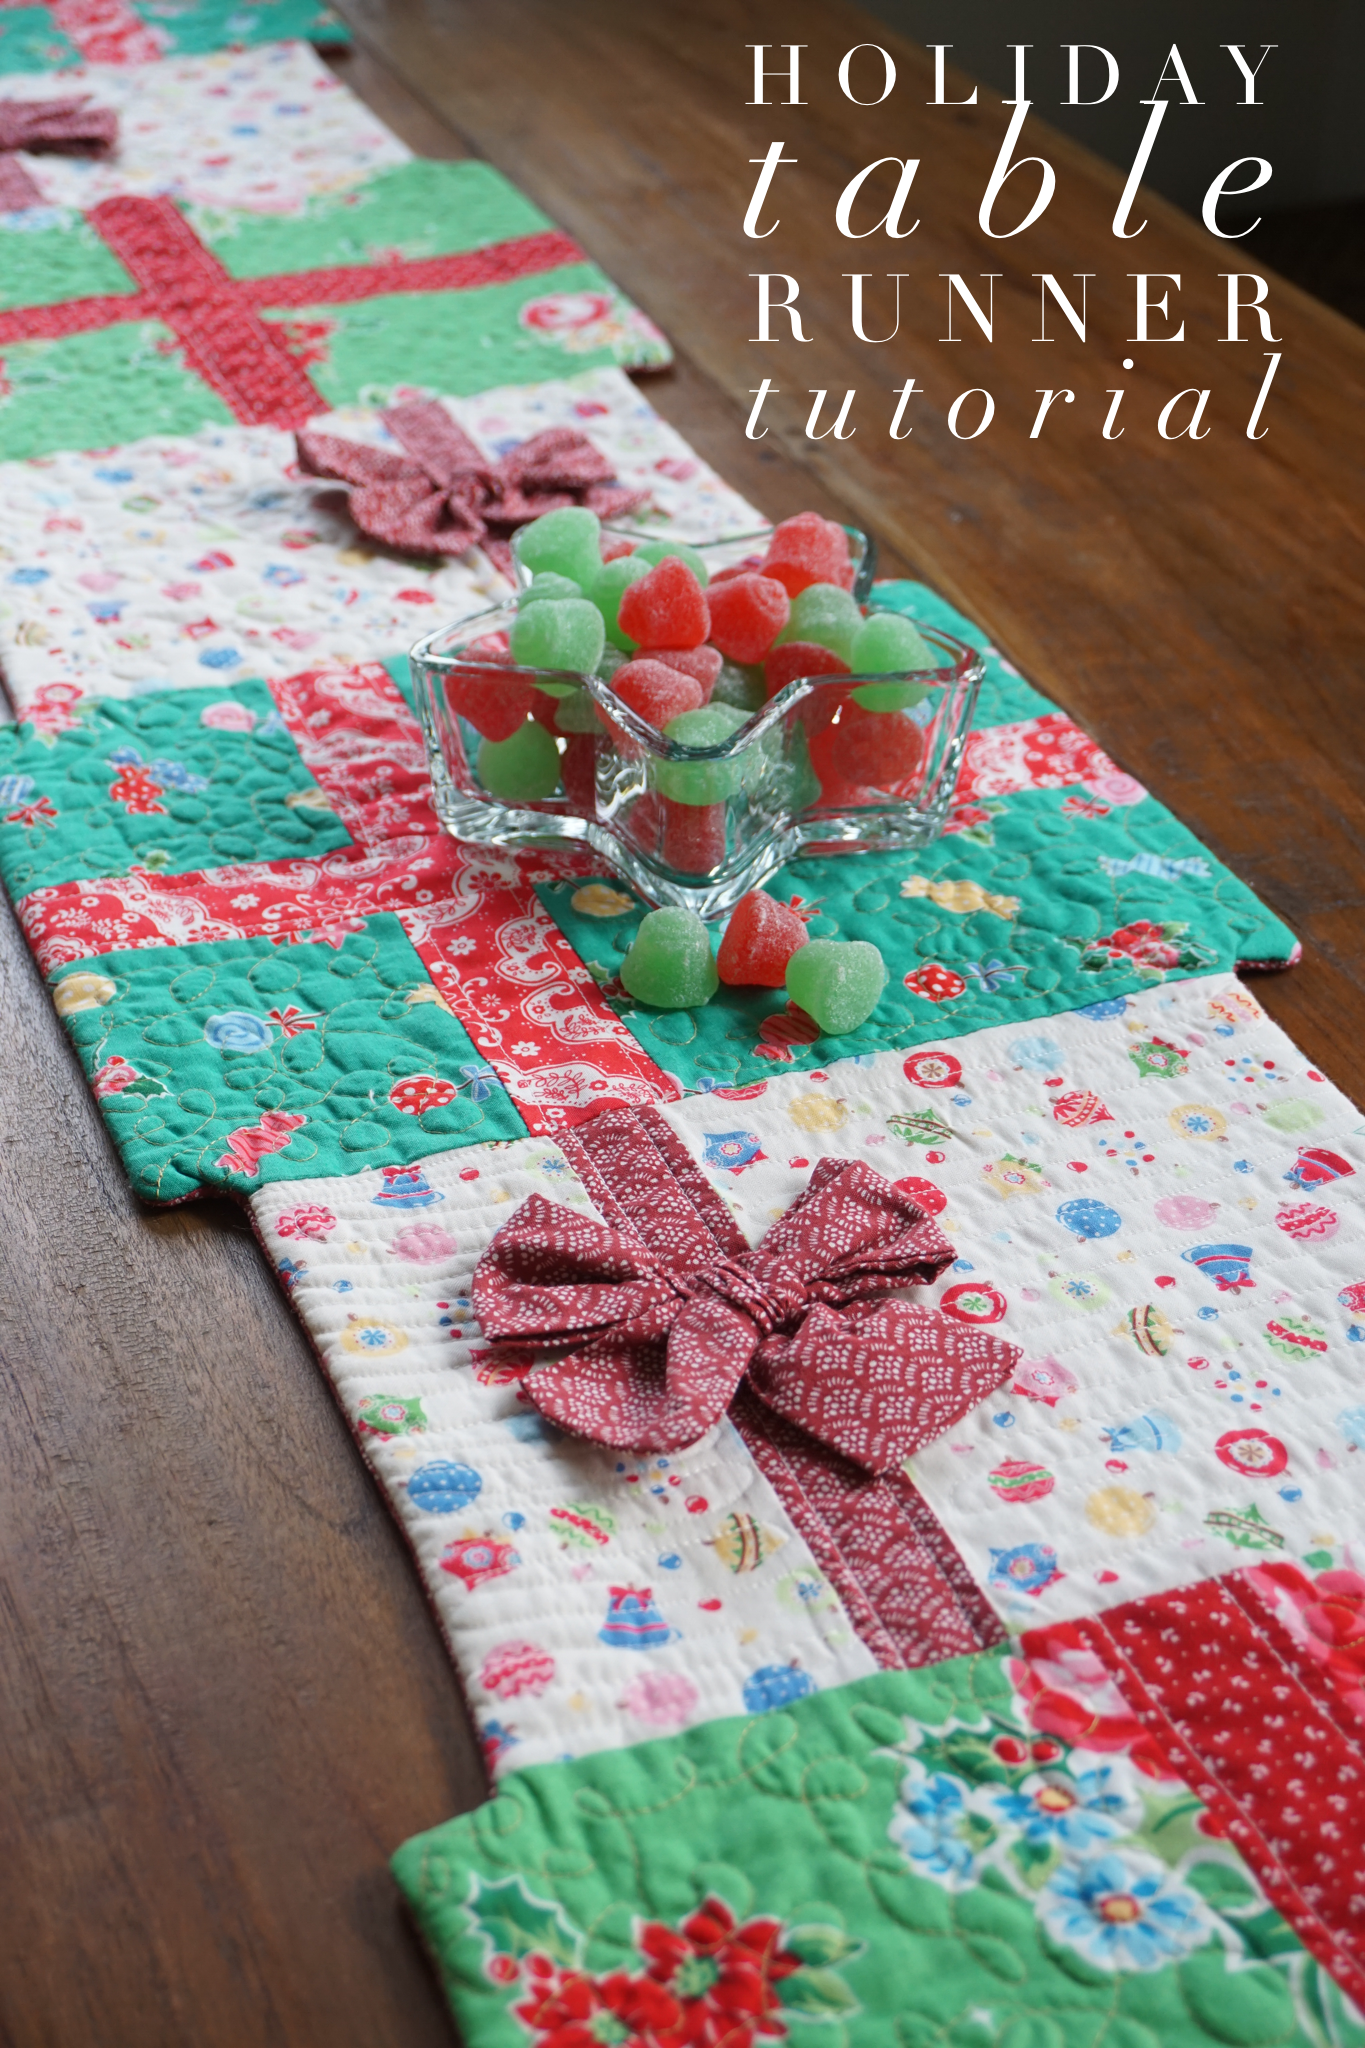 Holiday Table Runner Tutorial Holiday Table Runner Table Runner Tutorial Christmas Table Runner